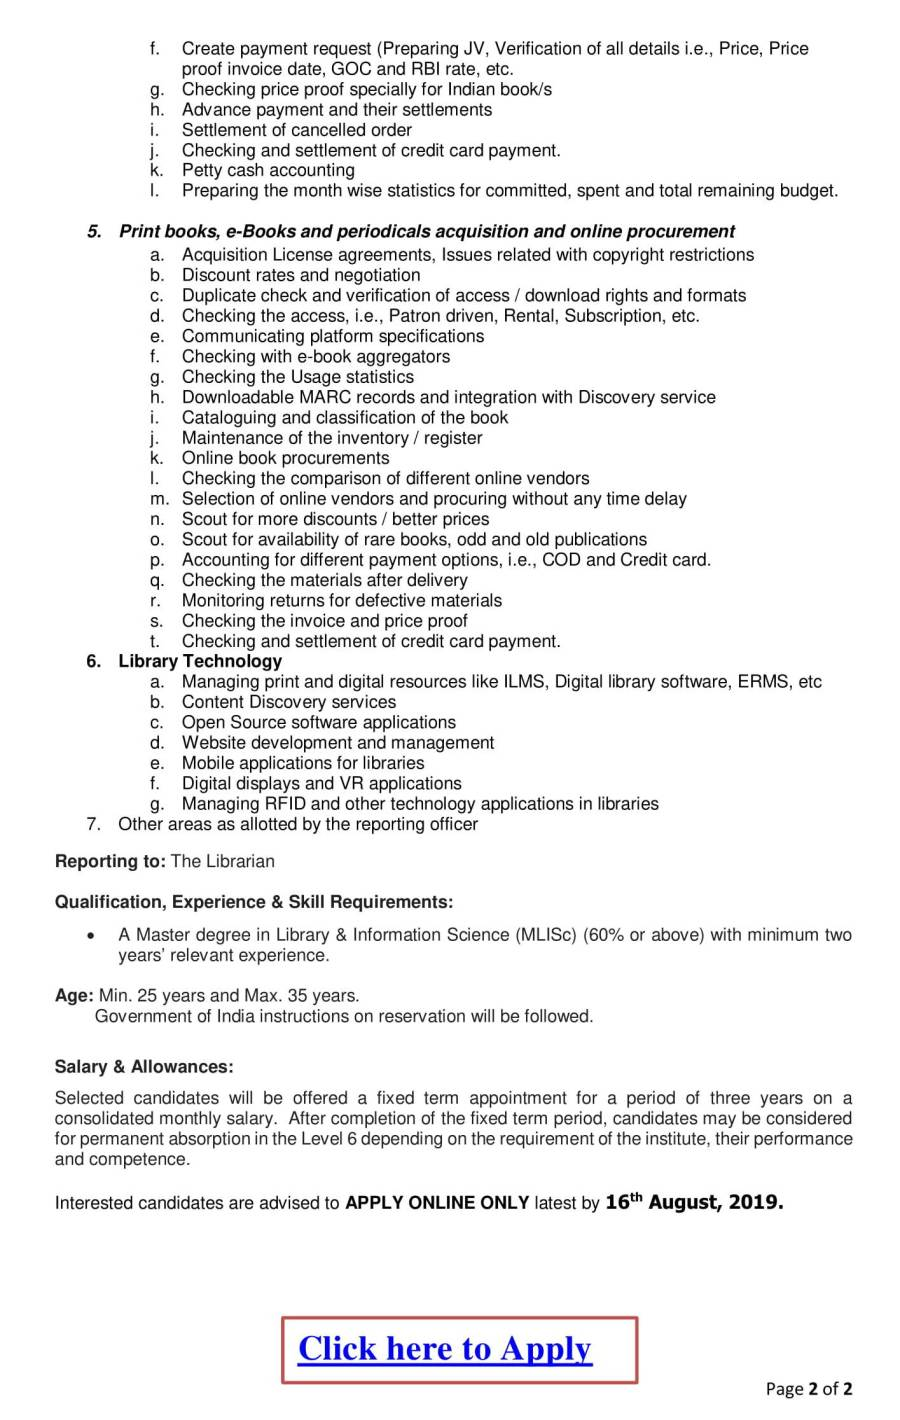 JD-Library-Professional-Assistant-2.jpg